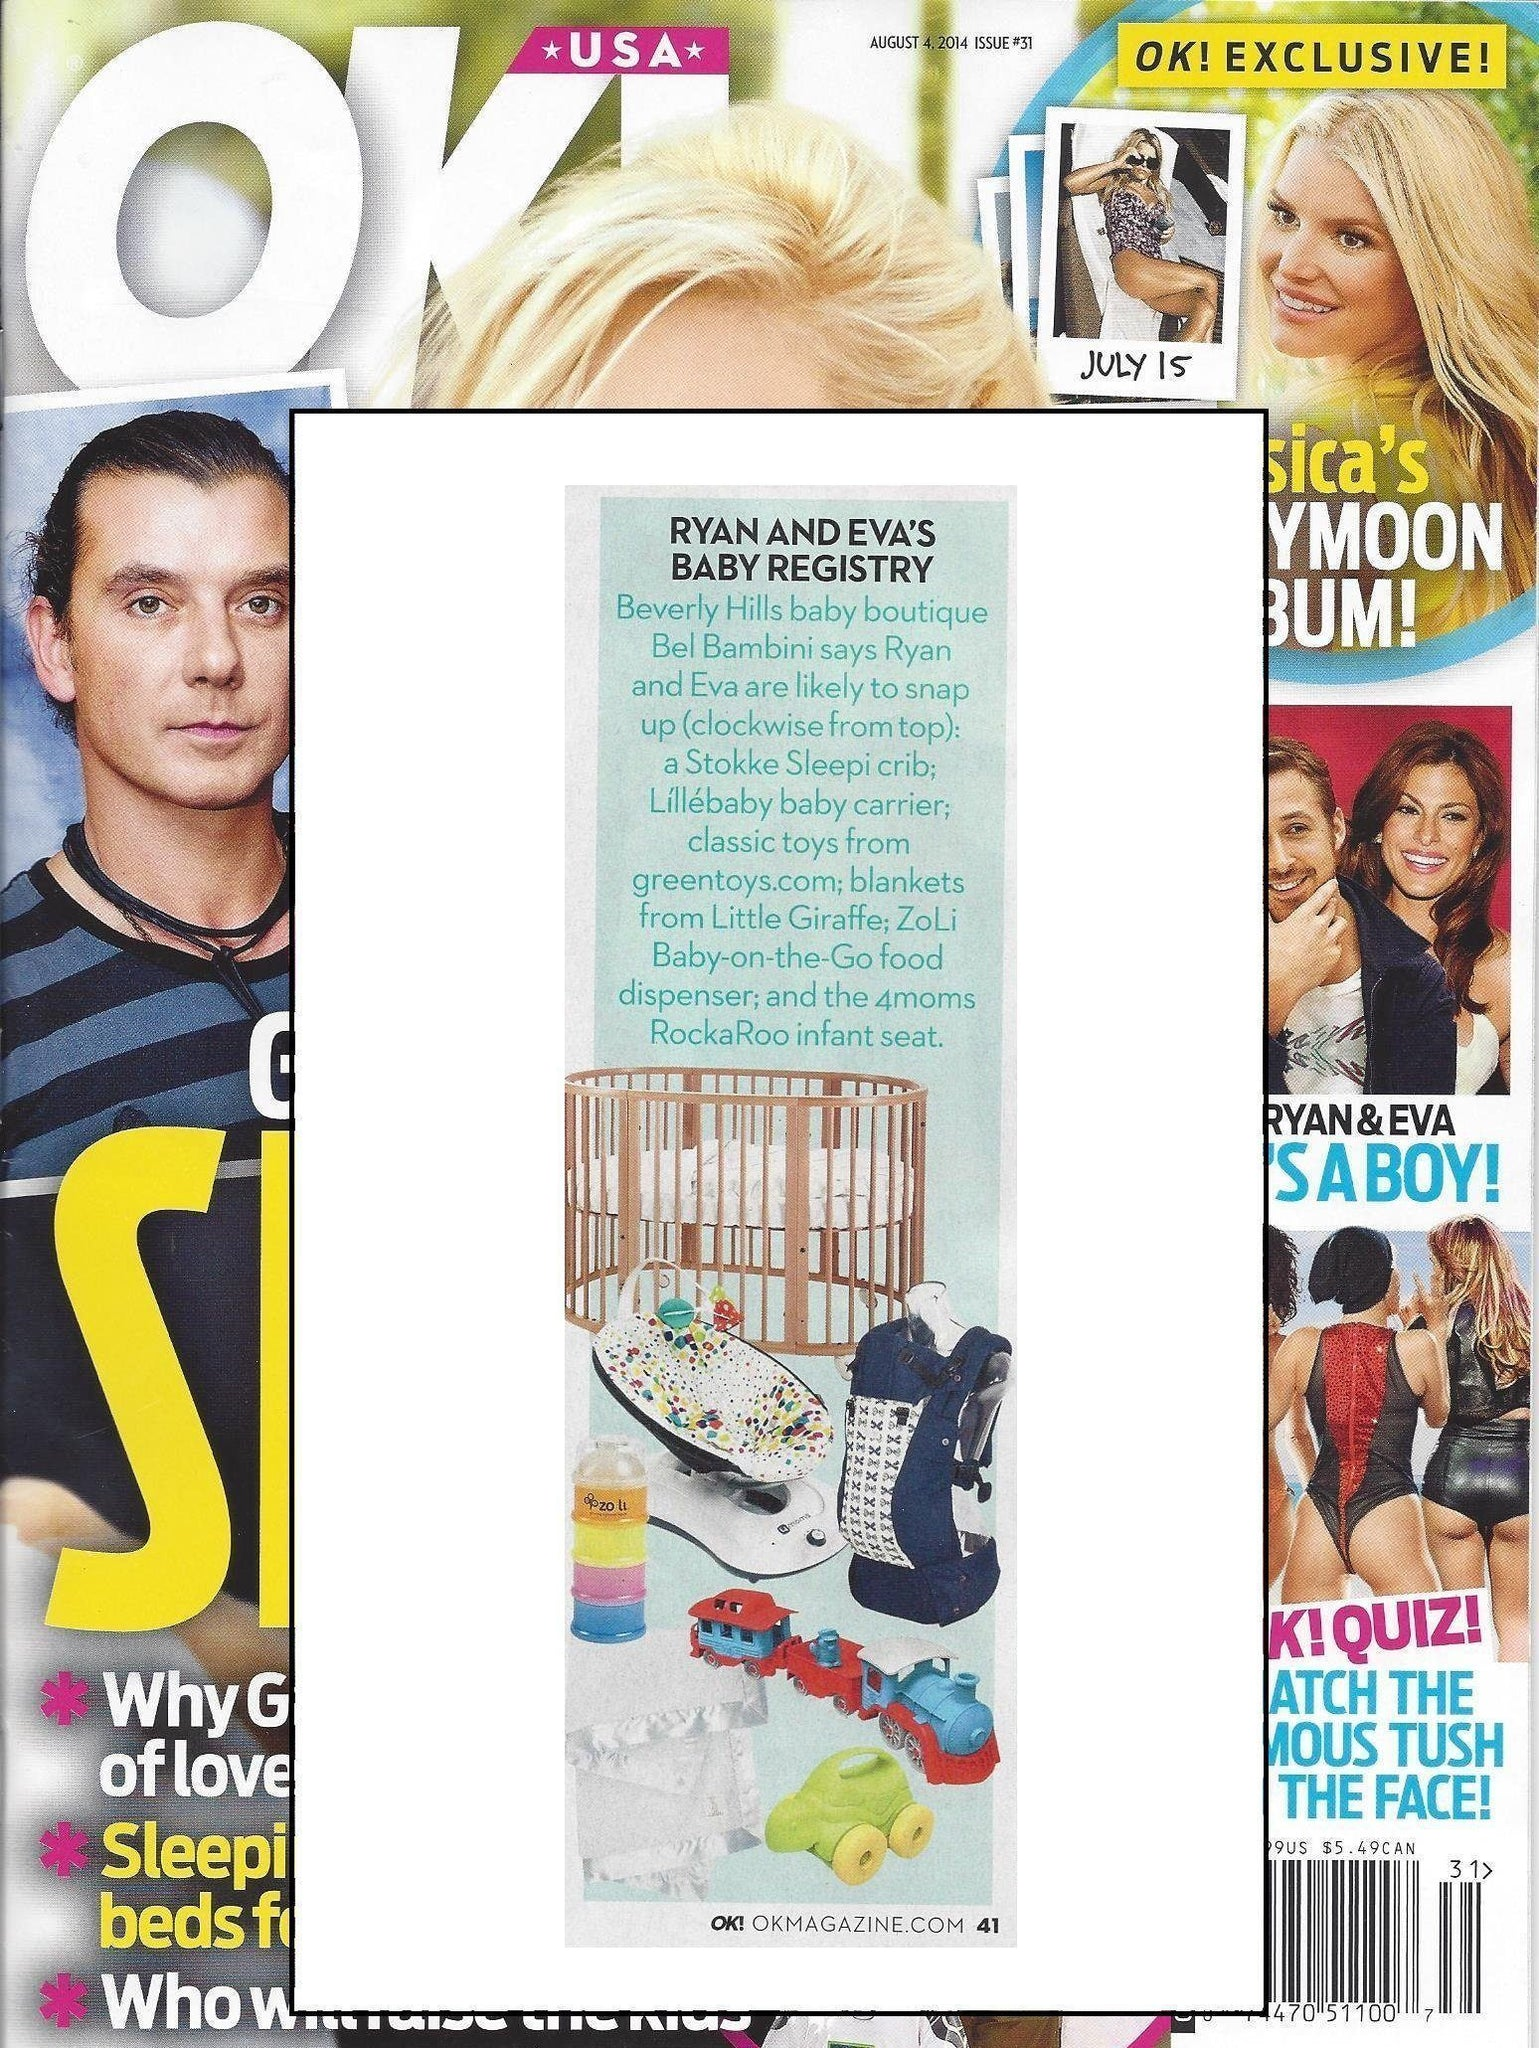 The perfect baby gift, as seen in Aug. 2014 issue of OK! Magazine.